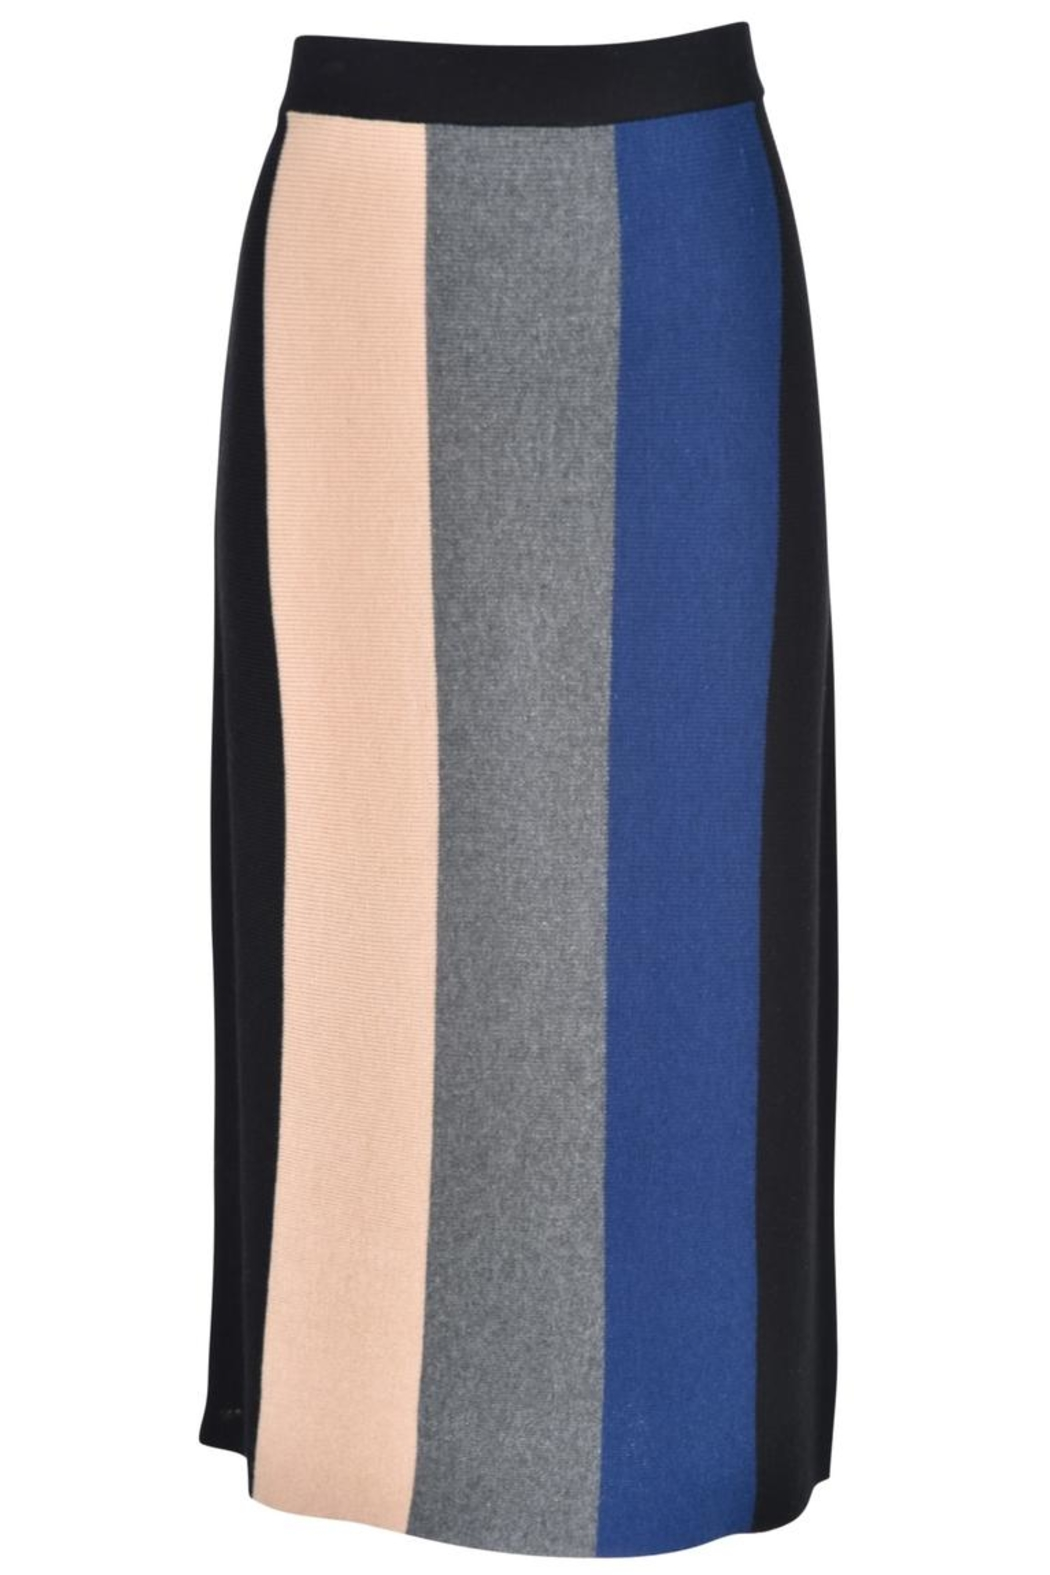 junee Banded Colored Skirt - Main Image